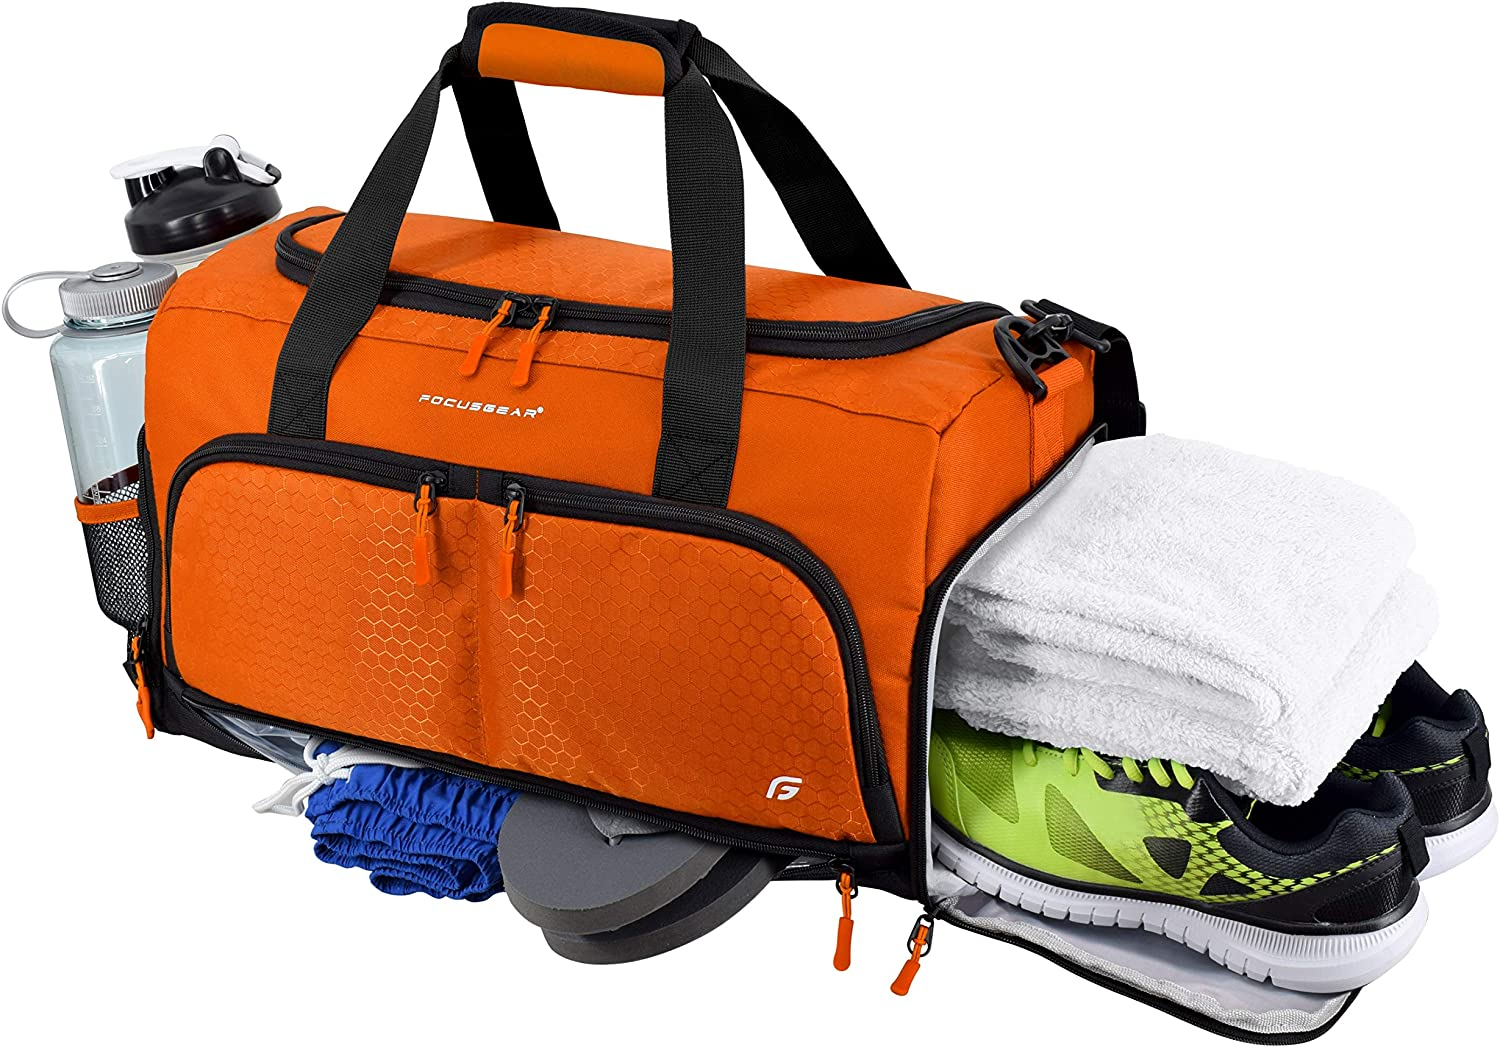 "Ultimate Gym Bag 2.0: The Durable Crowdsource Designed Duffel Bag with 10 Optimal Compartments Including Water Resistant Pouch (Orange, Medium (20""))"